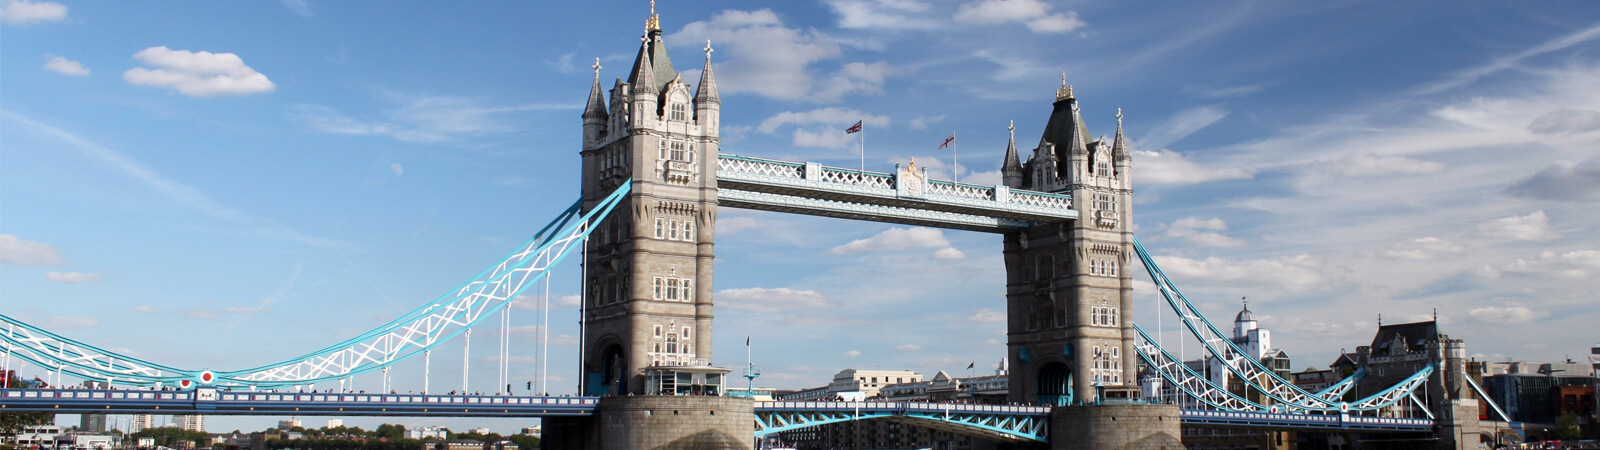 The Best Way To Experience Tower Bridge